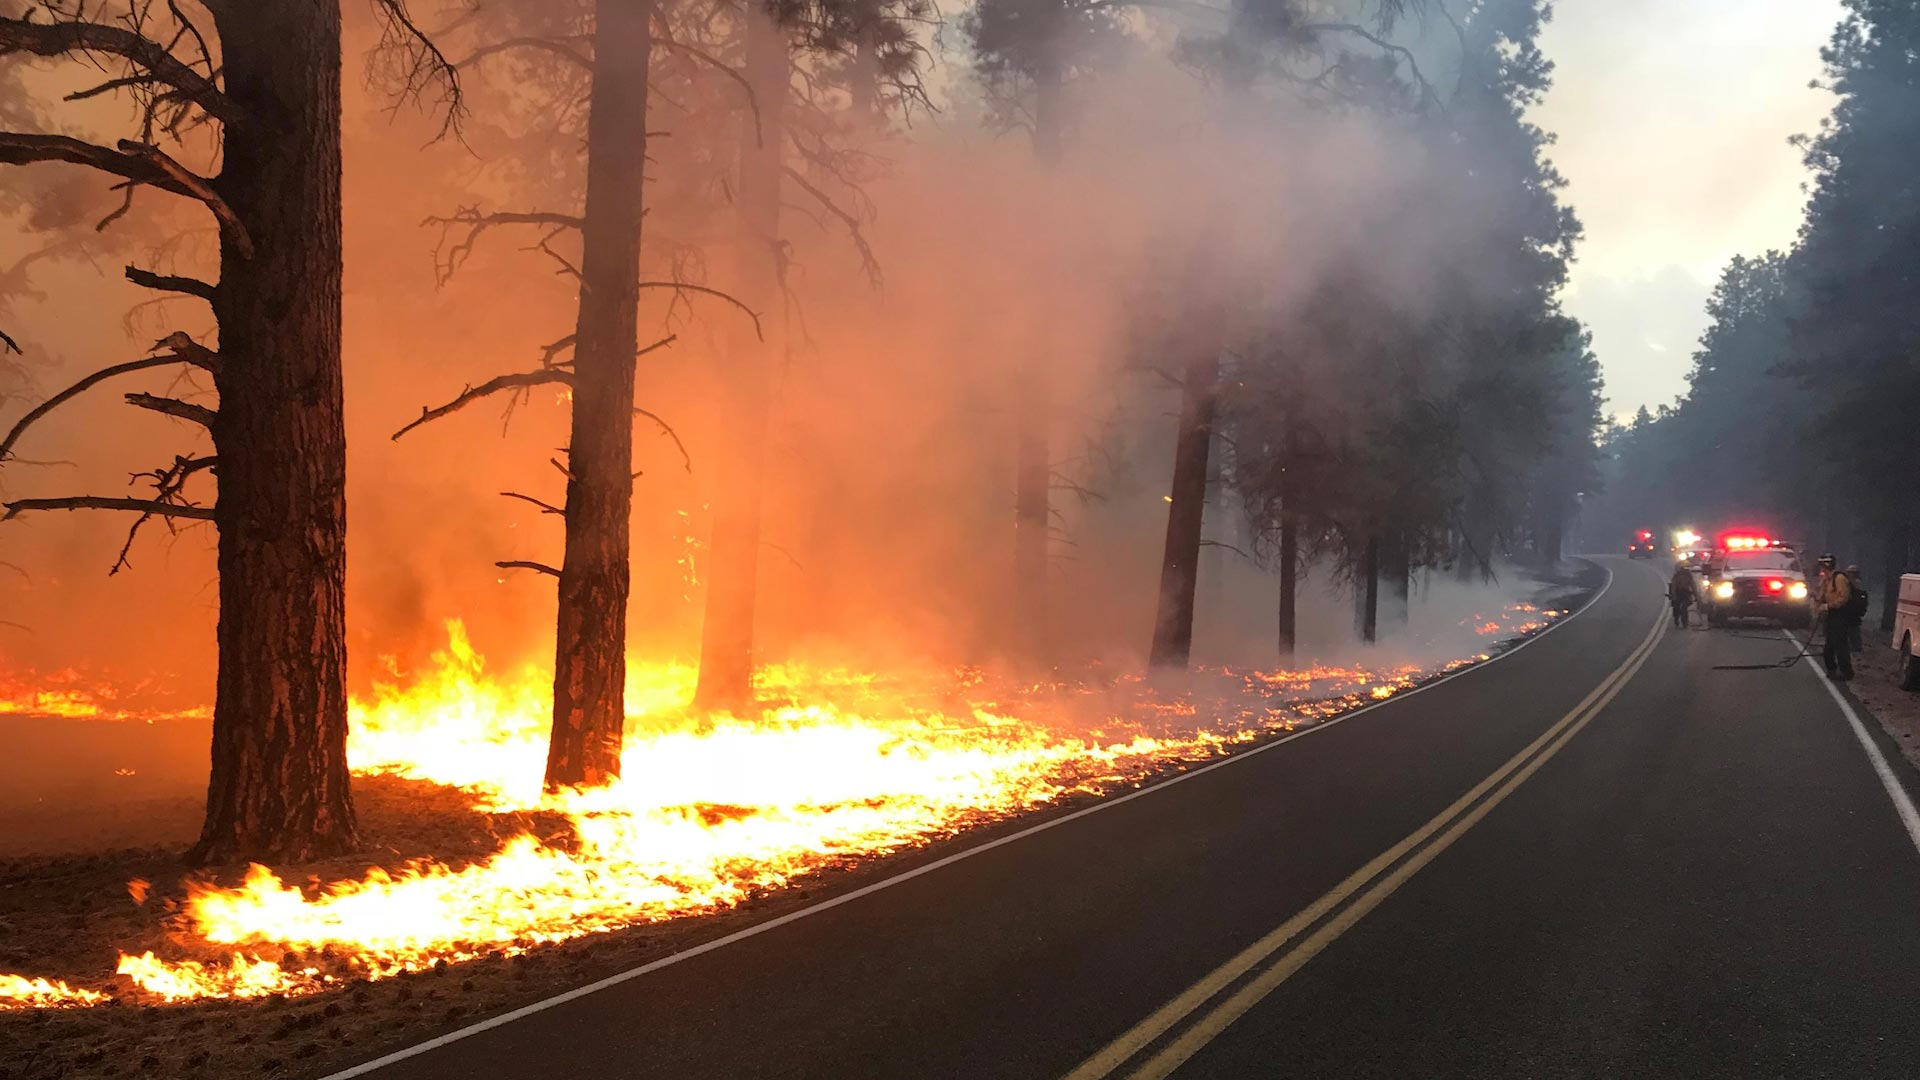 Flames from the Obi Fire run parallel to a highway. Lightning sparked the fire near Walhalla Plateau in Arizona on July 21, 2018.